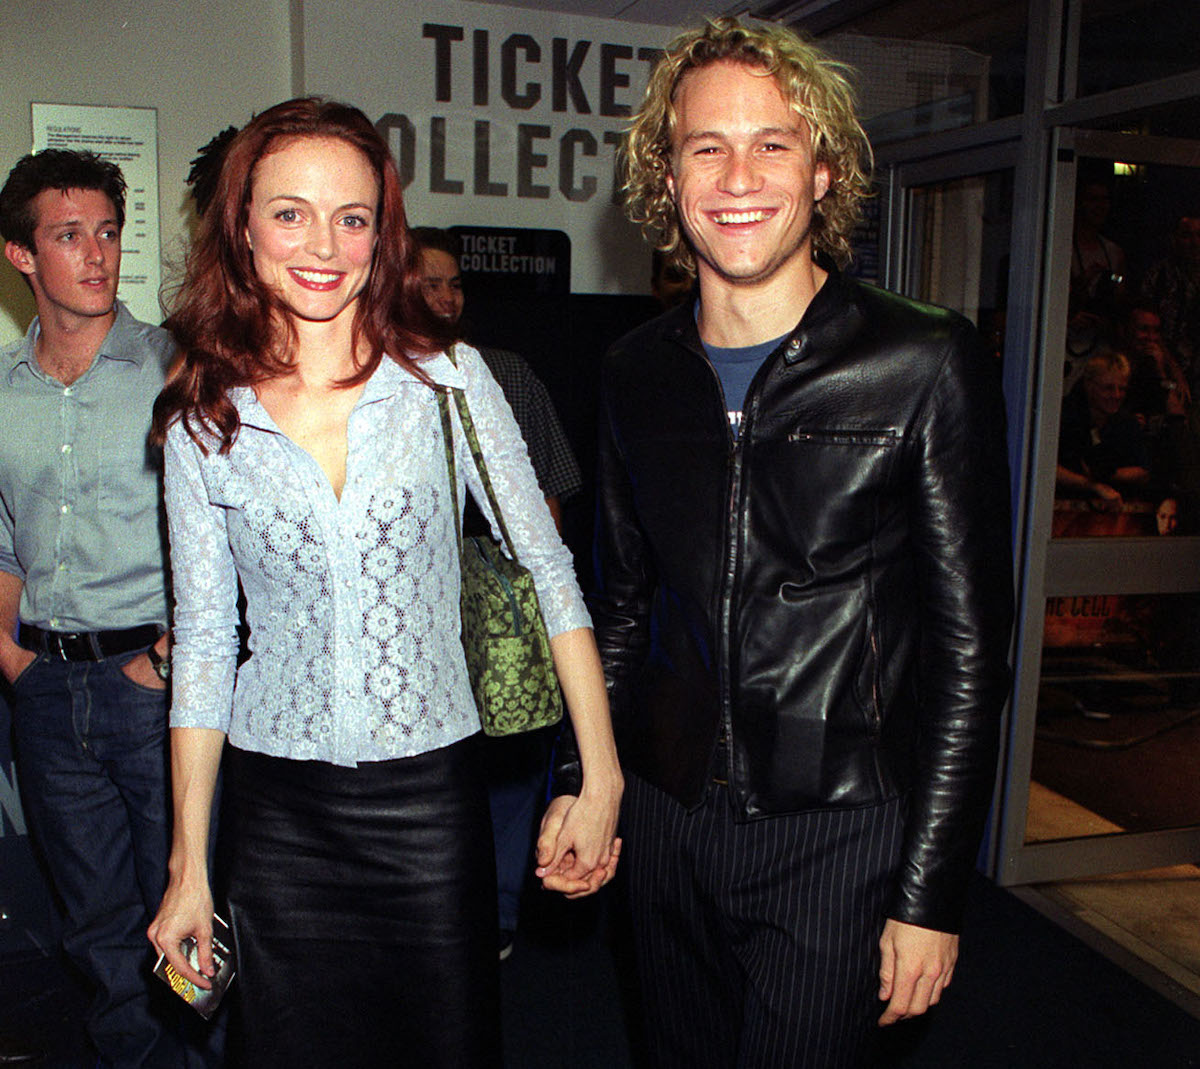 Australian actor Heath Ledger and American actress Heather Graham arriving at the UK premiere of Hollywood film 'The Cell' at The Odeon West End in Leicester Square, London.